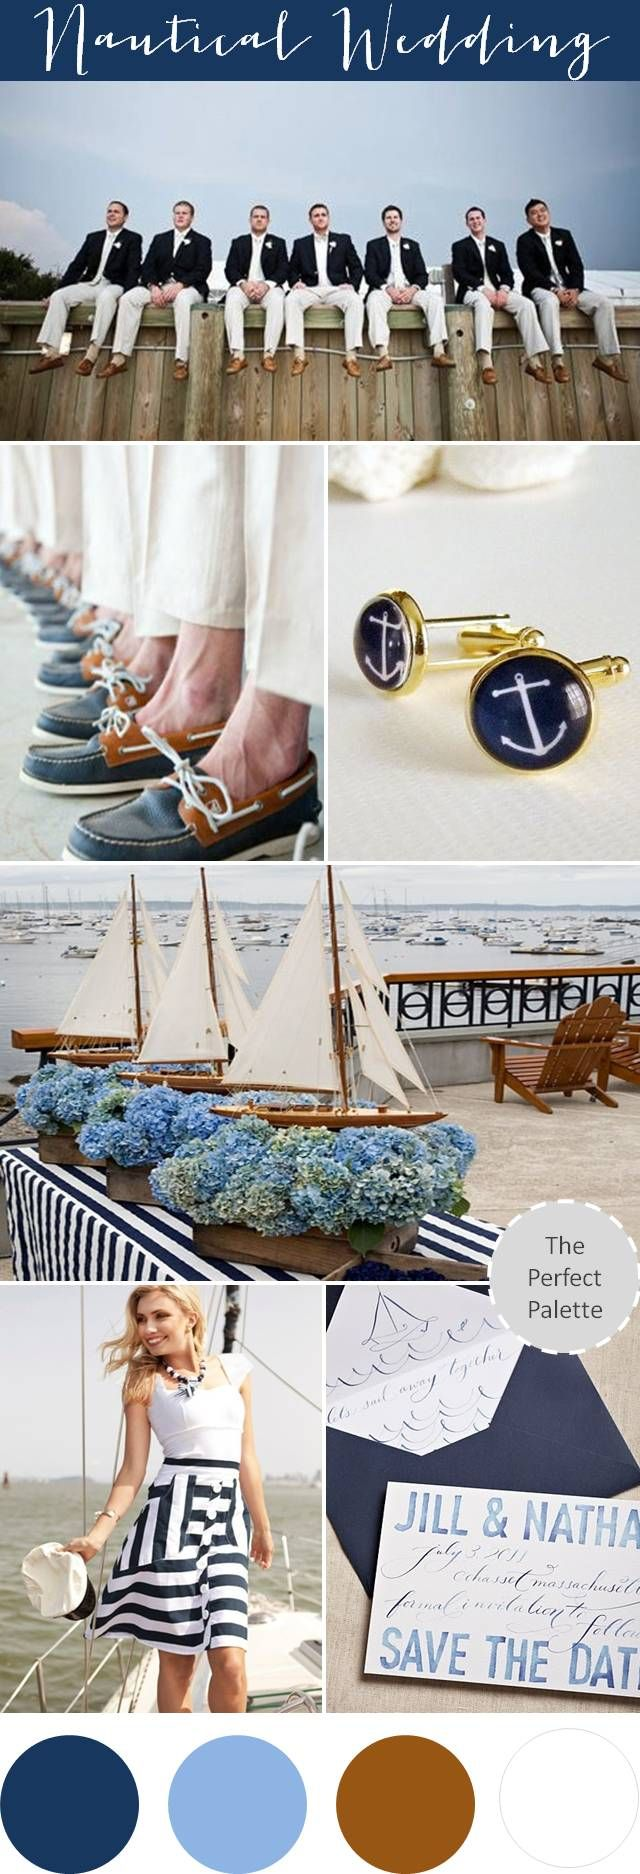 {Sail Away with Me}: Shades of Blue   Brown